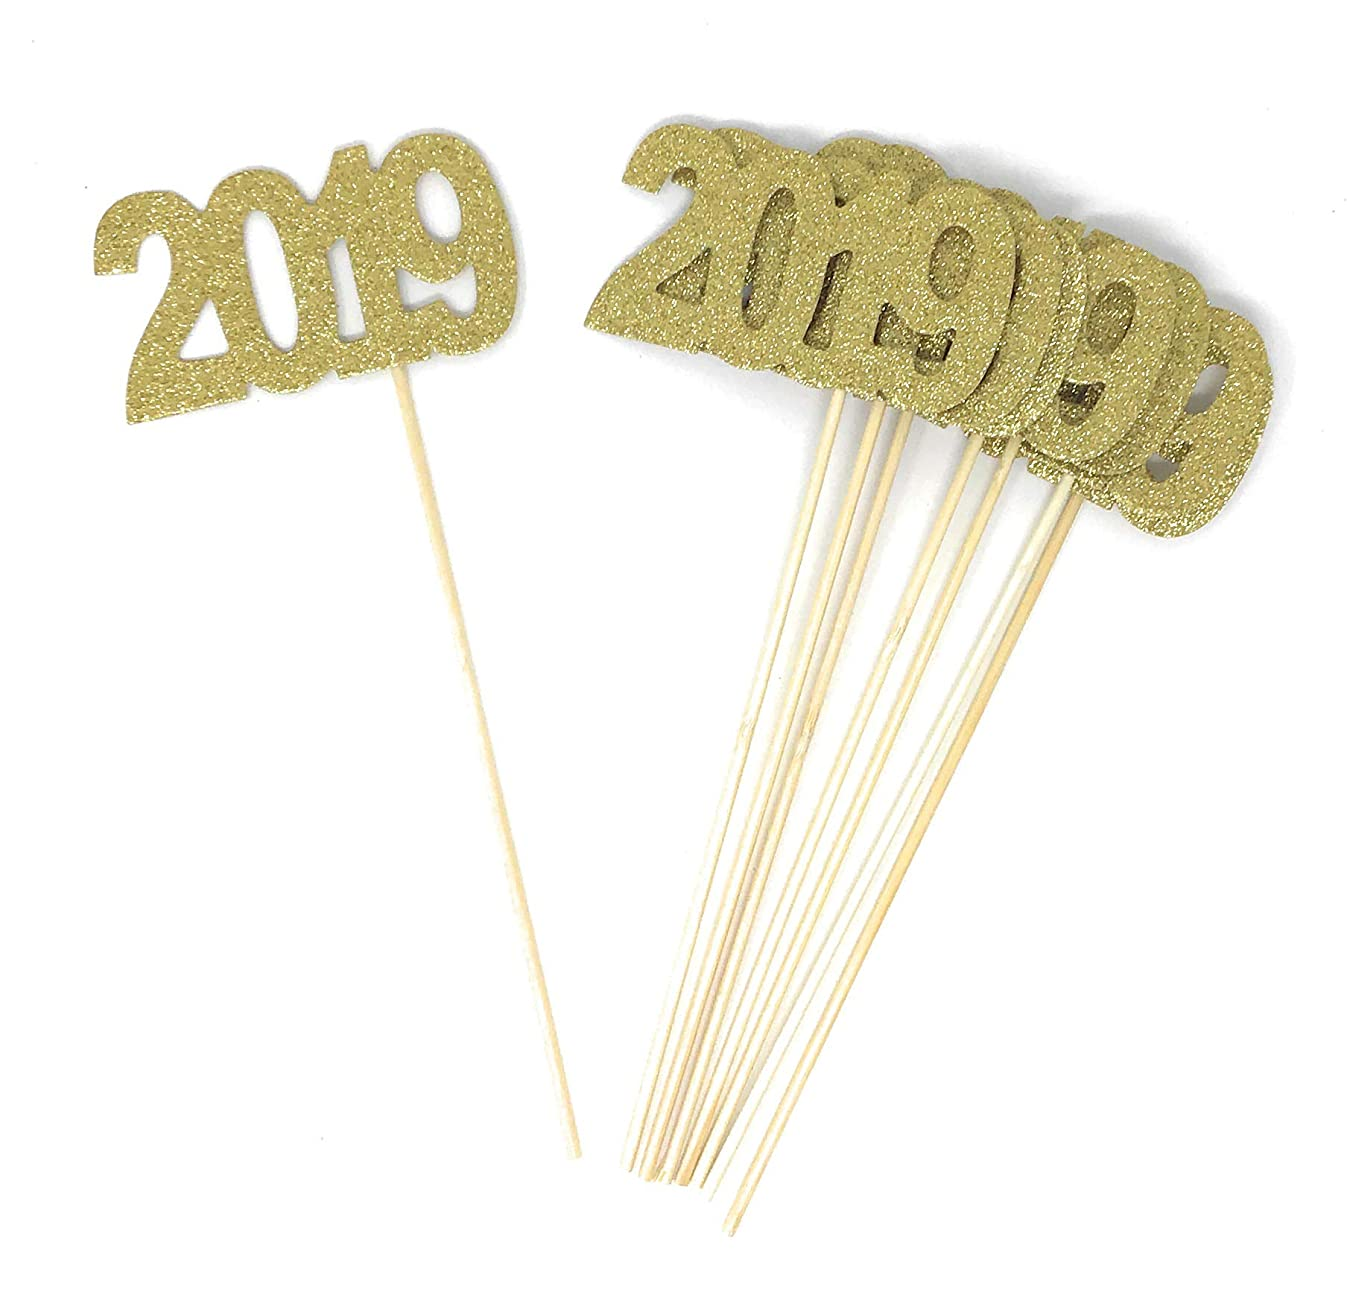 8 pack of Double Sided Gold Glitter 2019 Centerpiece Sticks in Various Colors for DIY Graduation and New Years Decor (Gold)